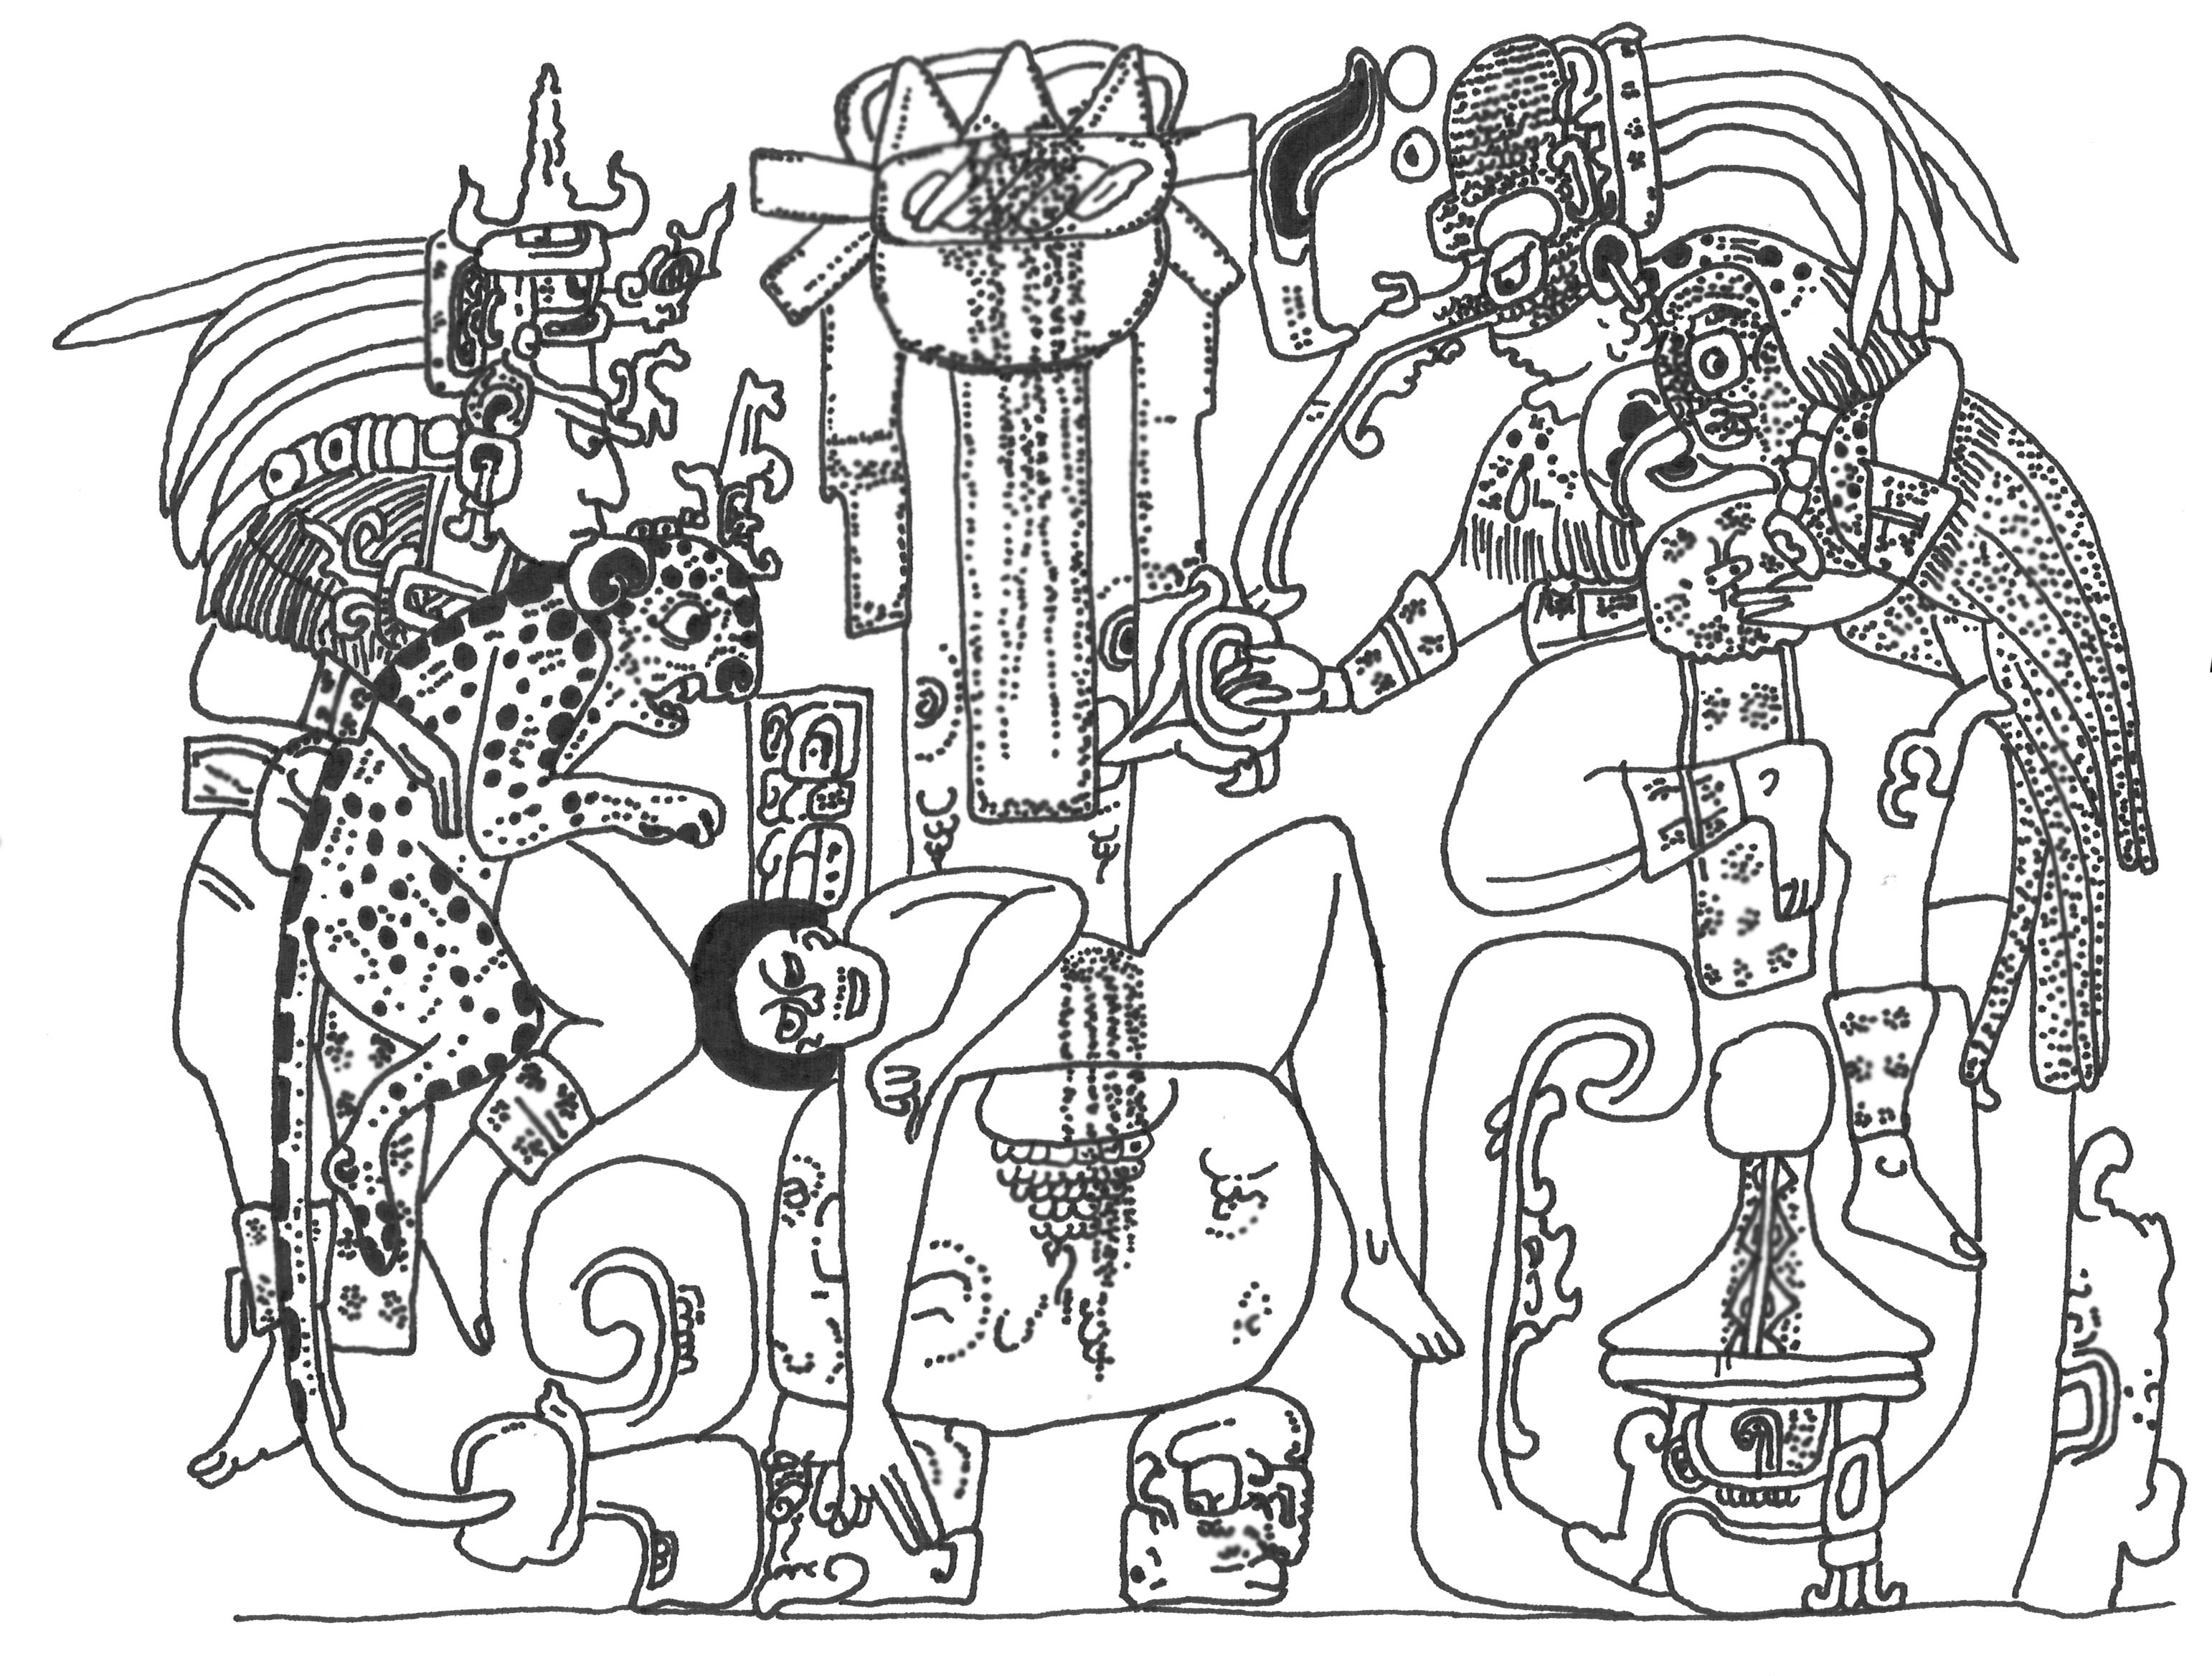 3084x2337 Axes Mundi Ritual Complexes In Mesoamerica And The Book Of Mormon